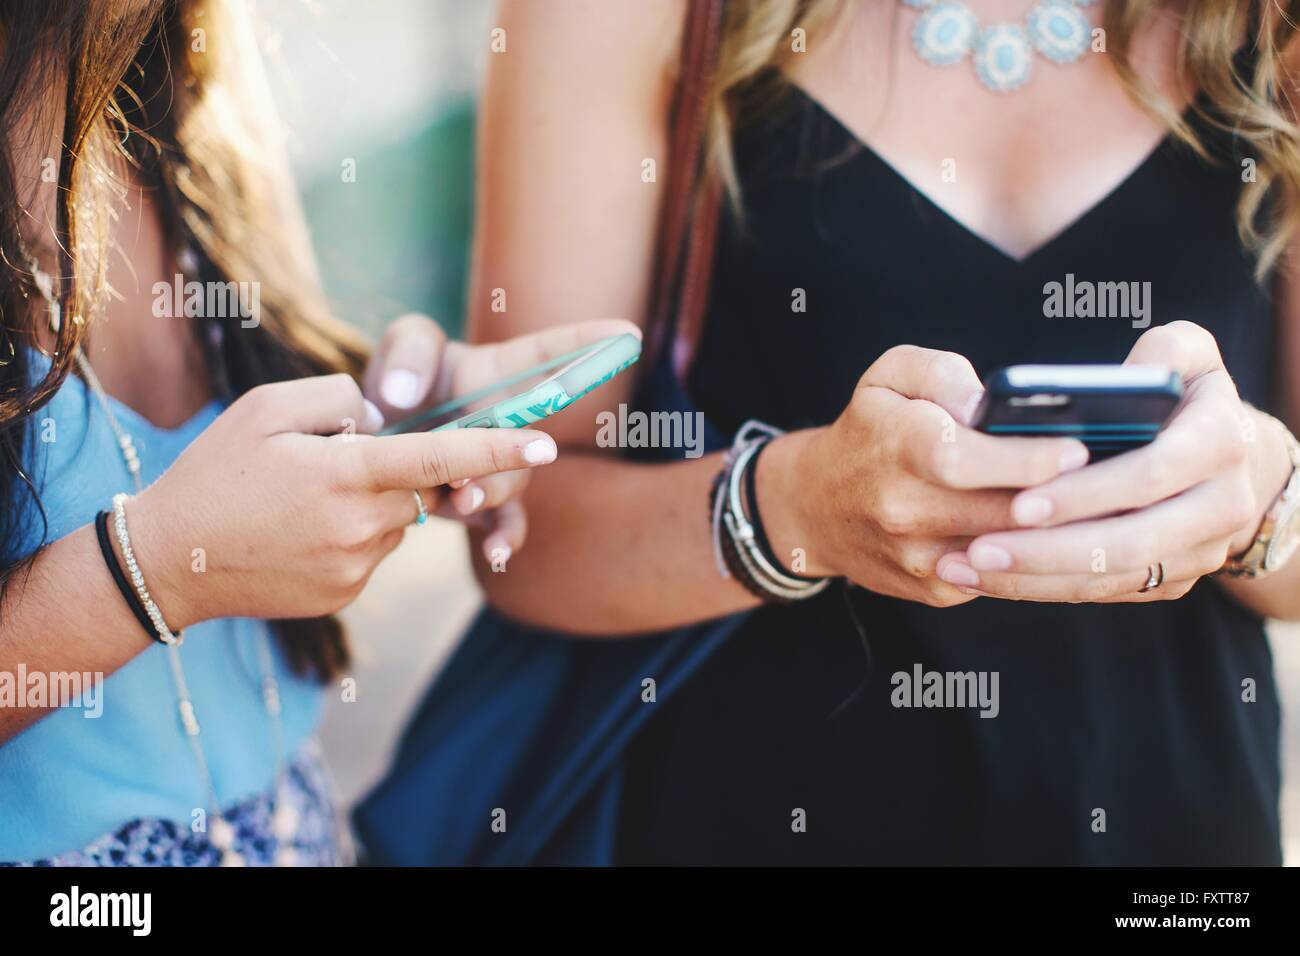 Cropped view of womens mid sections texting on smartphones - Stock Image